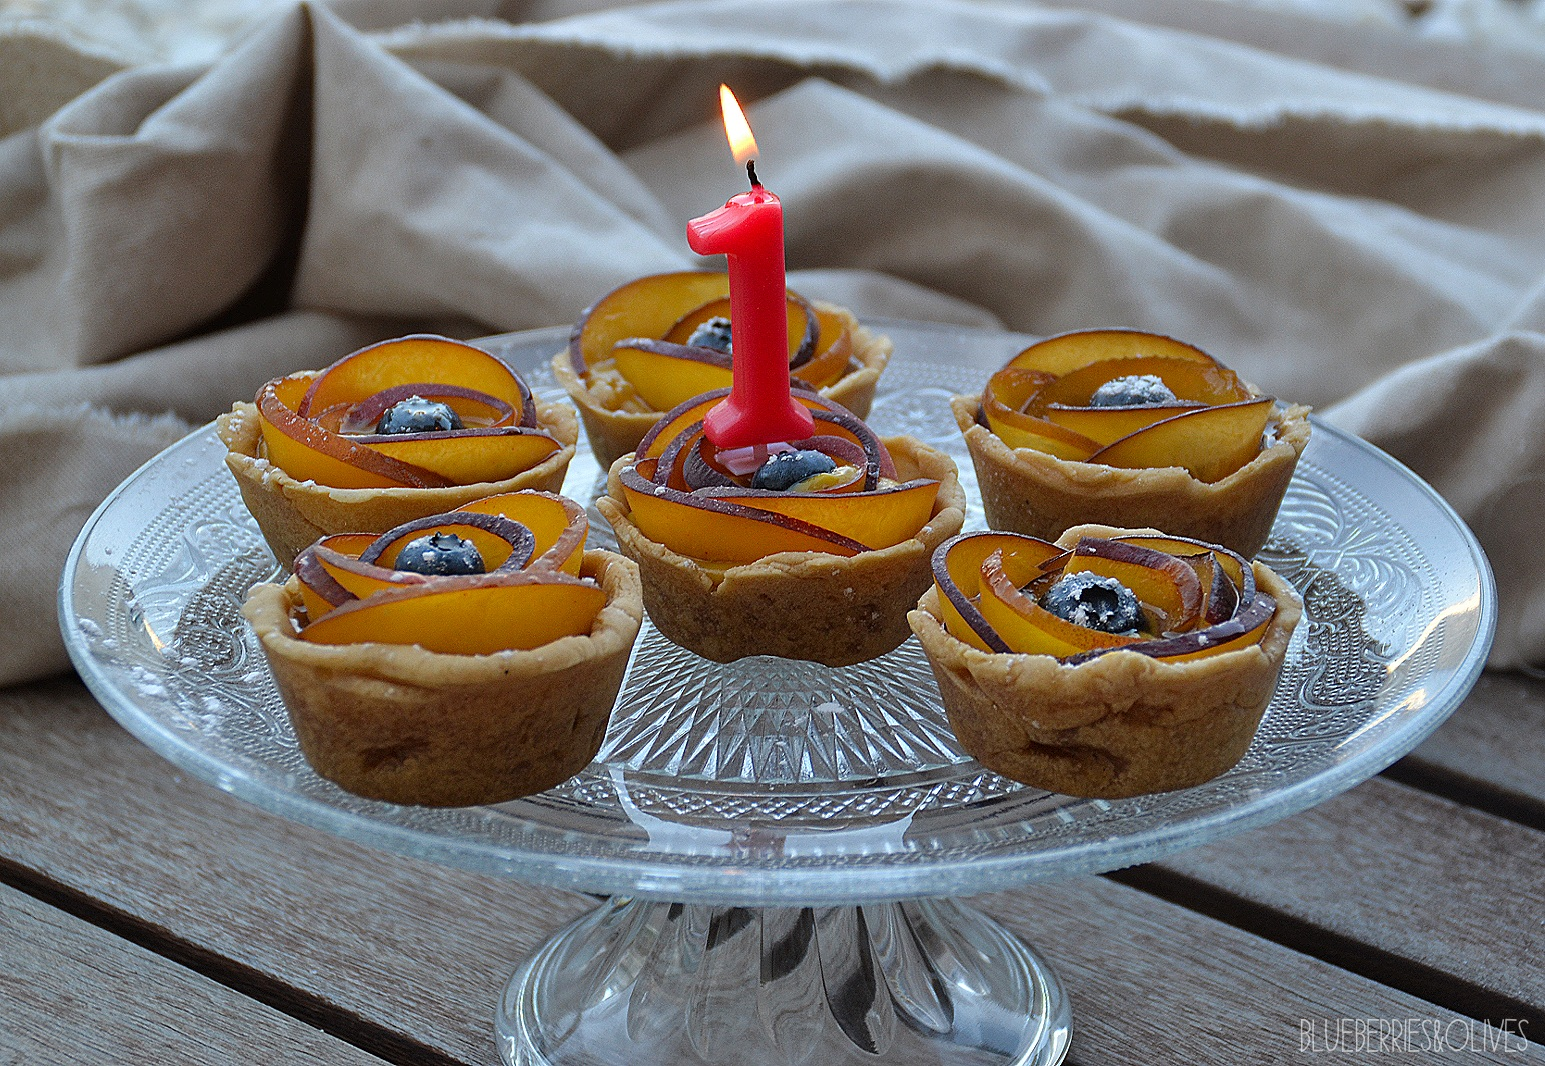 PEACH AND BLUEBERRY TARTLETS WITH VANILLA CUSTARD + BLUEBERRIES&OLIVES 1ST ANNIVERSARY